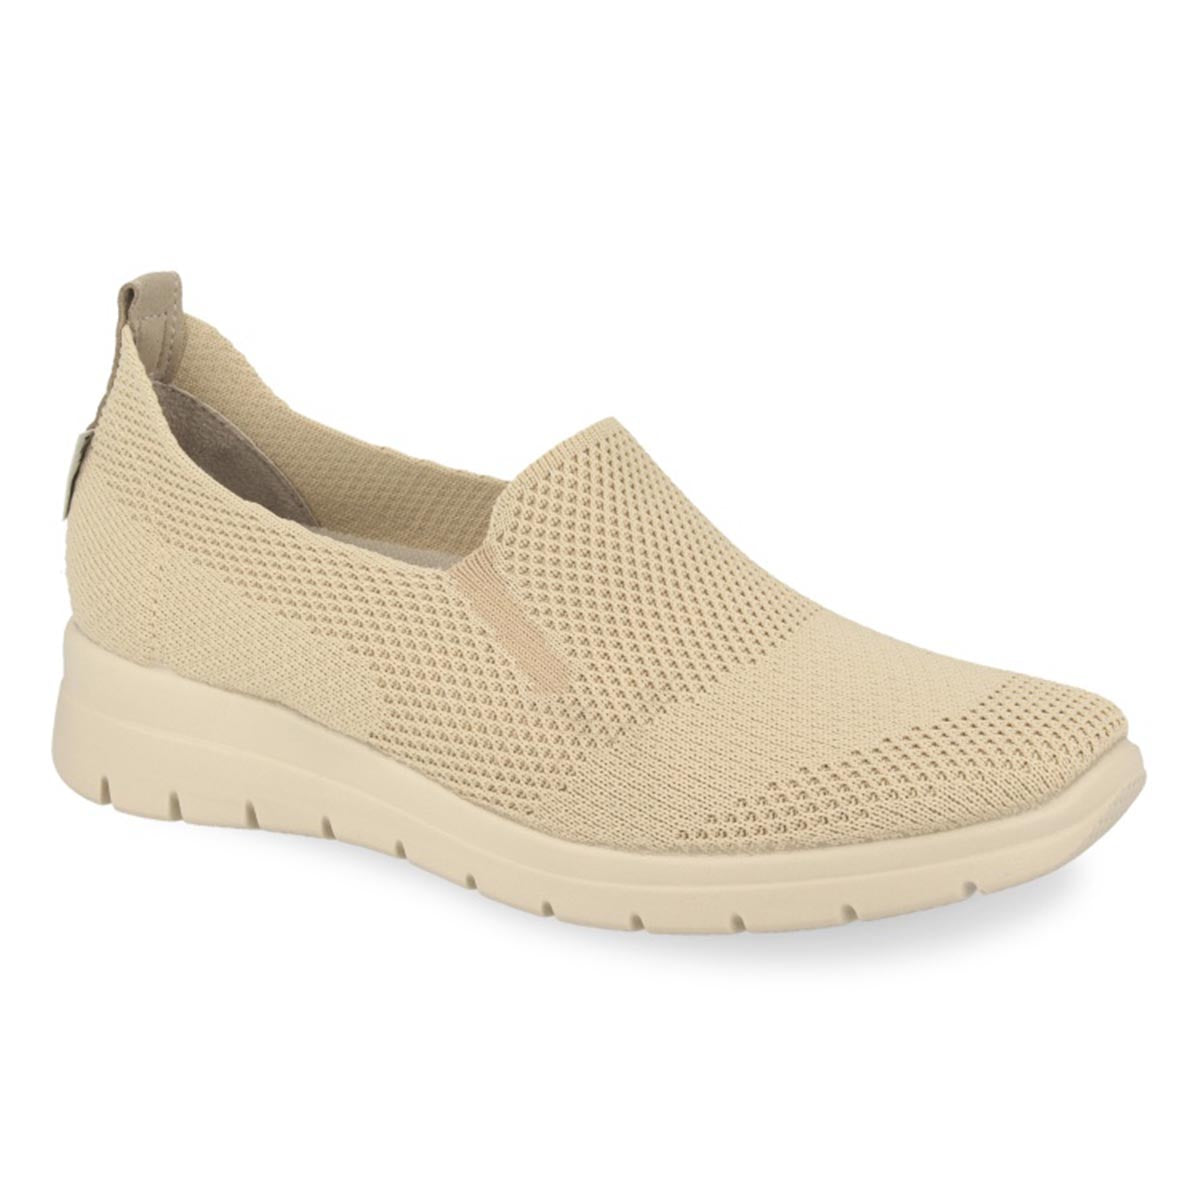 Cloth Woman Shoe Beige (27d38kq)